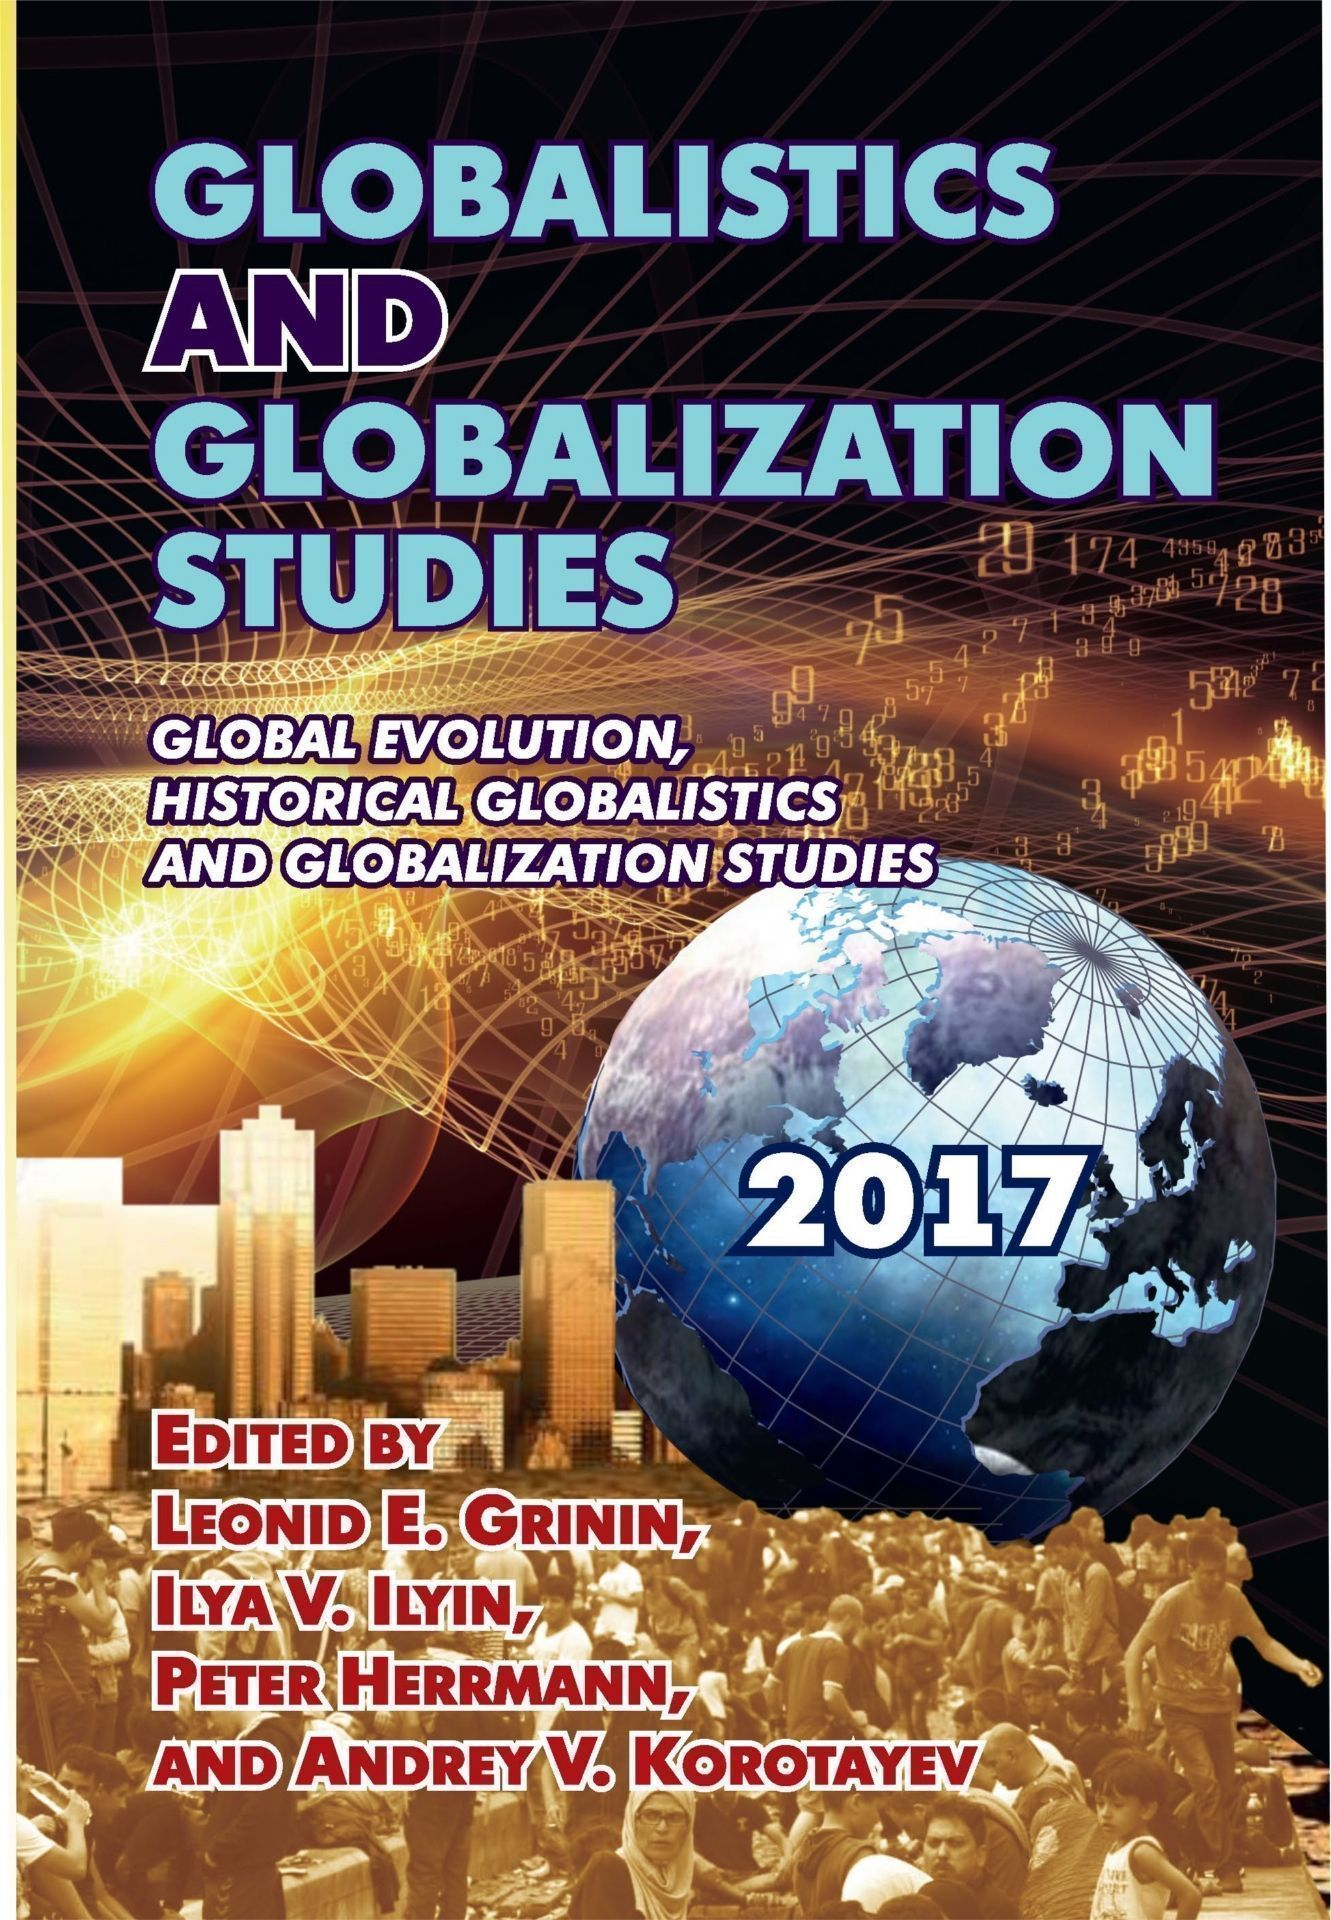 Globalistics and Globalization Studies: Global Evolution, Historical Globalistics and Globalization Studies, год издания 2017, Herrmann Peter, Grinin L.E., Korotayev A.V., Ilyin I.V., ISBN 9785705753864, Учитель , 978-5-7057-5386-4, 978-5-705-75386-4, 978-5-70-575386-4 - купить со скидкой